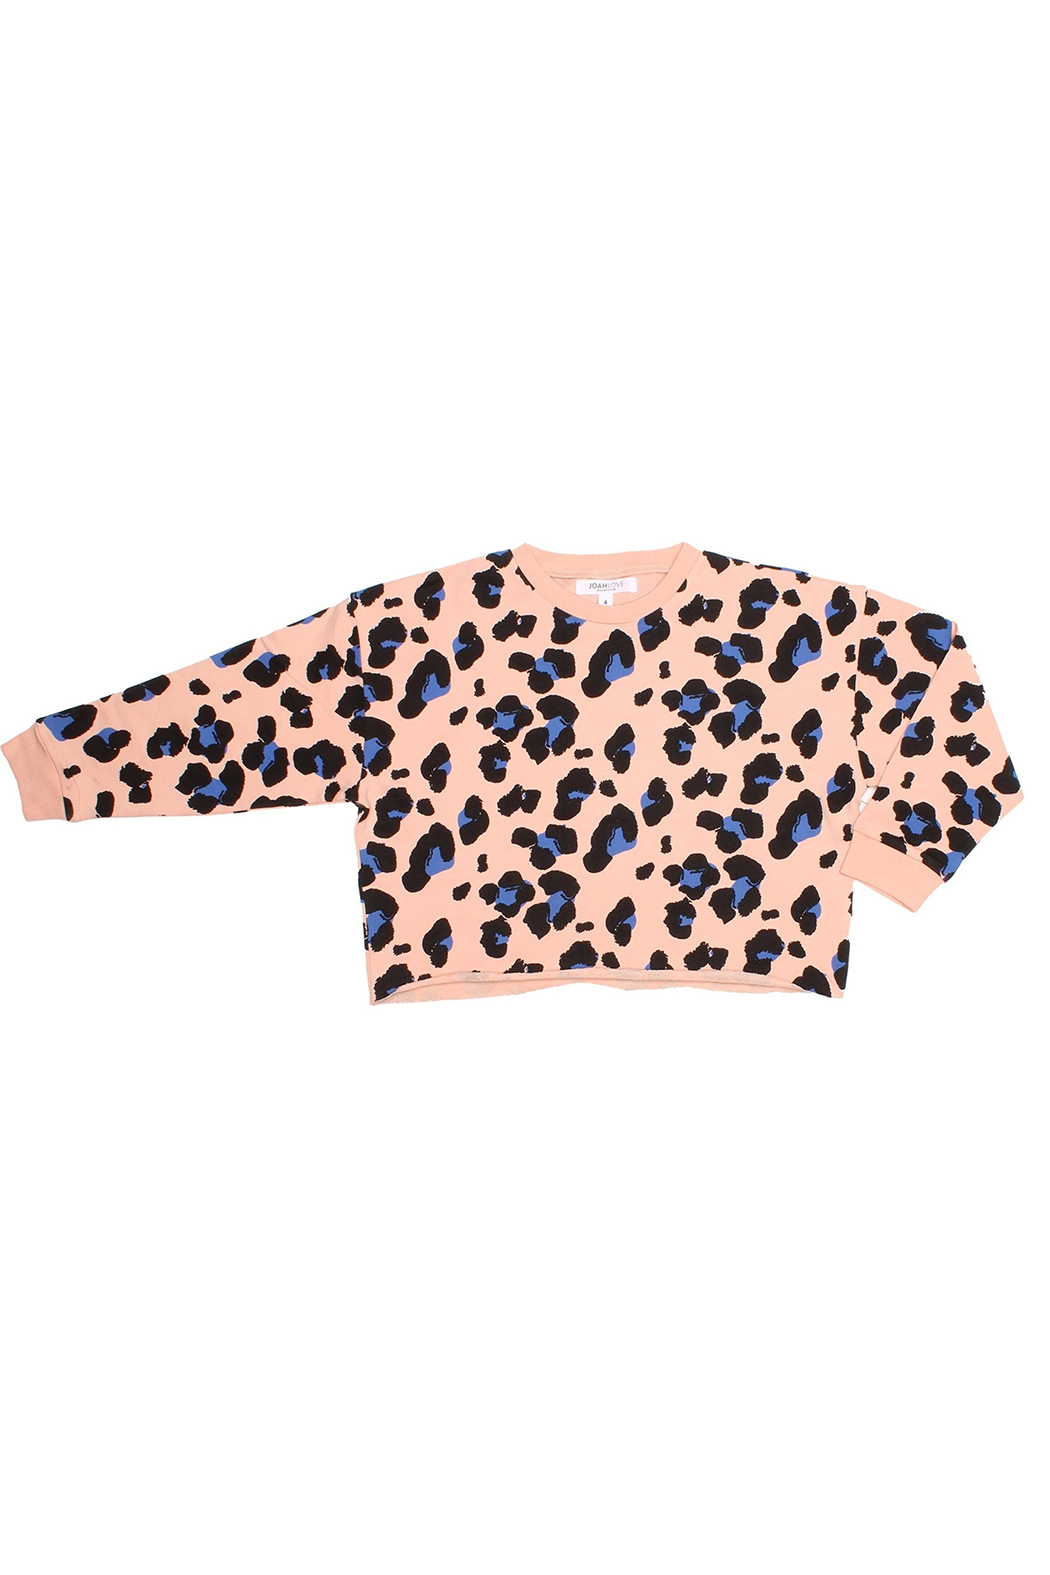 JOAH LOVE Kennedy Cheetah Pullover - Main Image